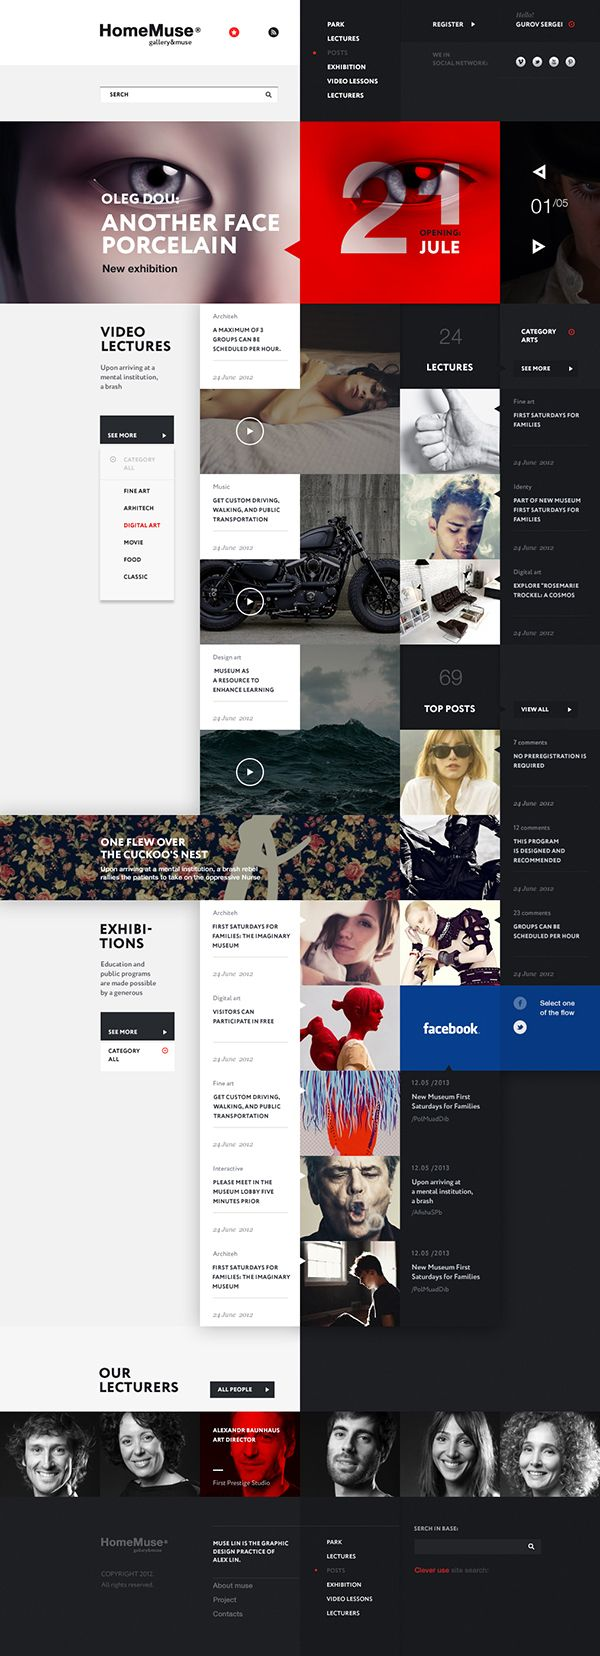 HomeMuse Gallery by Sergei Gurov, via Behance